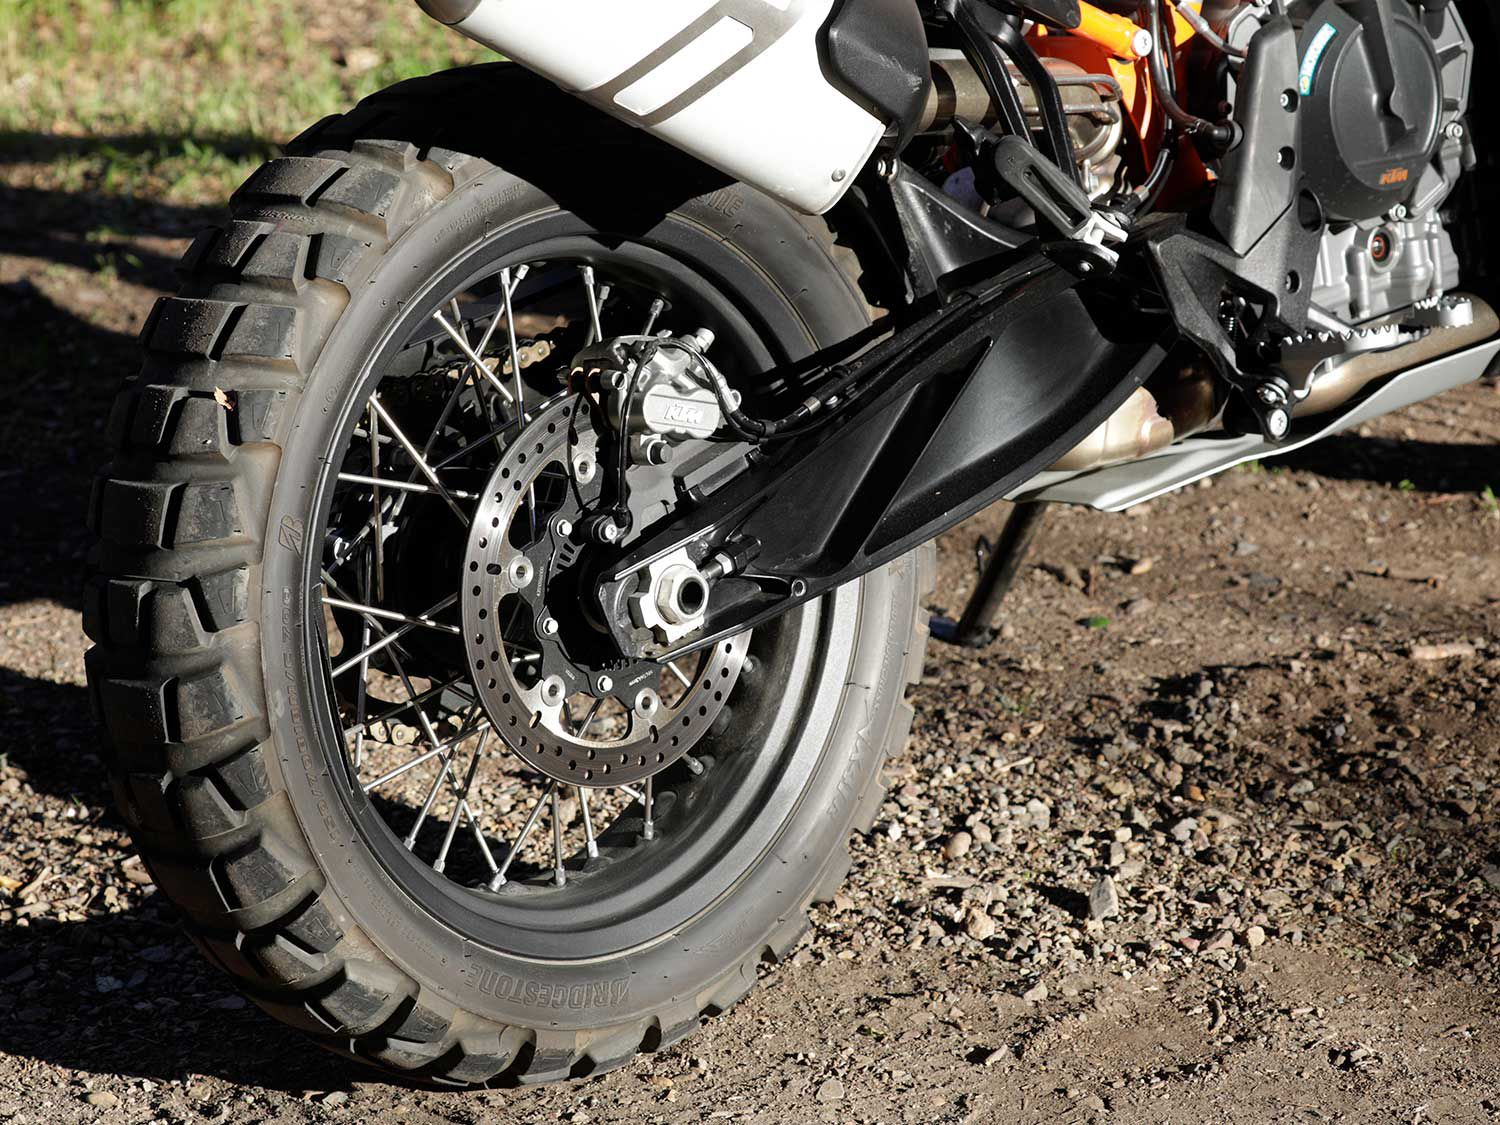 Ready for adventure. The 790 Adventure rolls on a real off-road-sized 18-inch rear wheel. Note the double-piston rear brake caliper that delivers a high degree of feel when off roading.